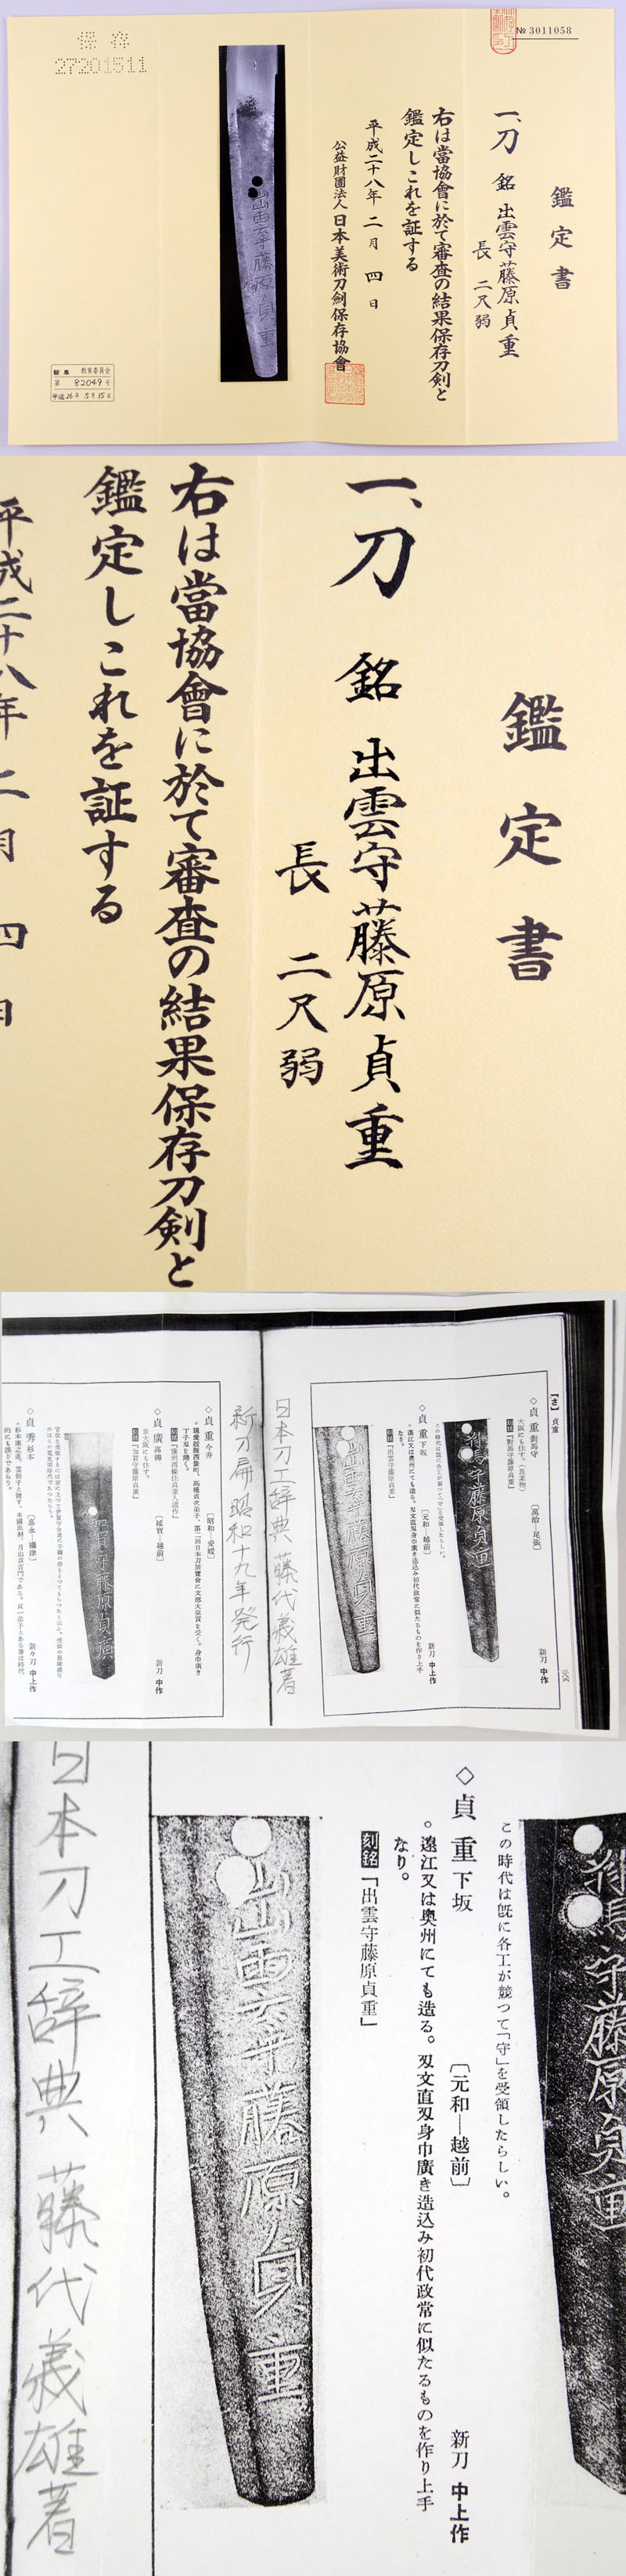 出雲守藤原貞重 Picture of Certificate